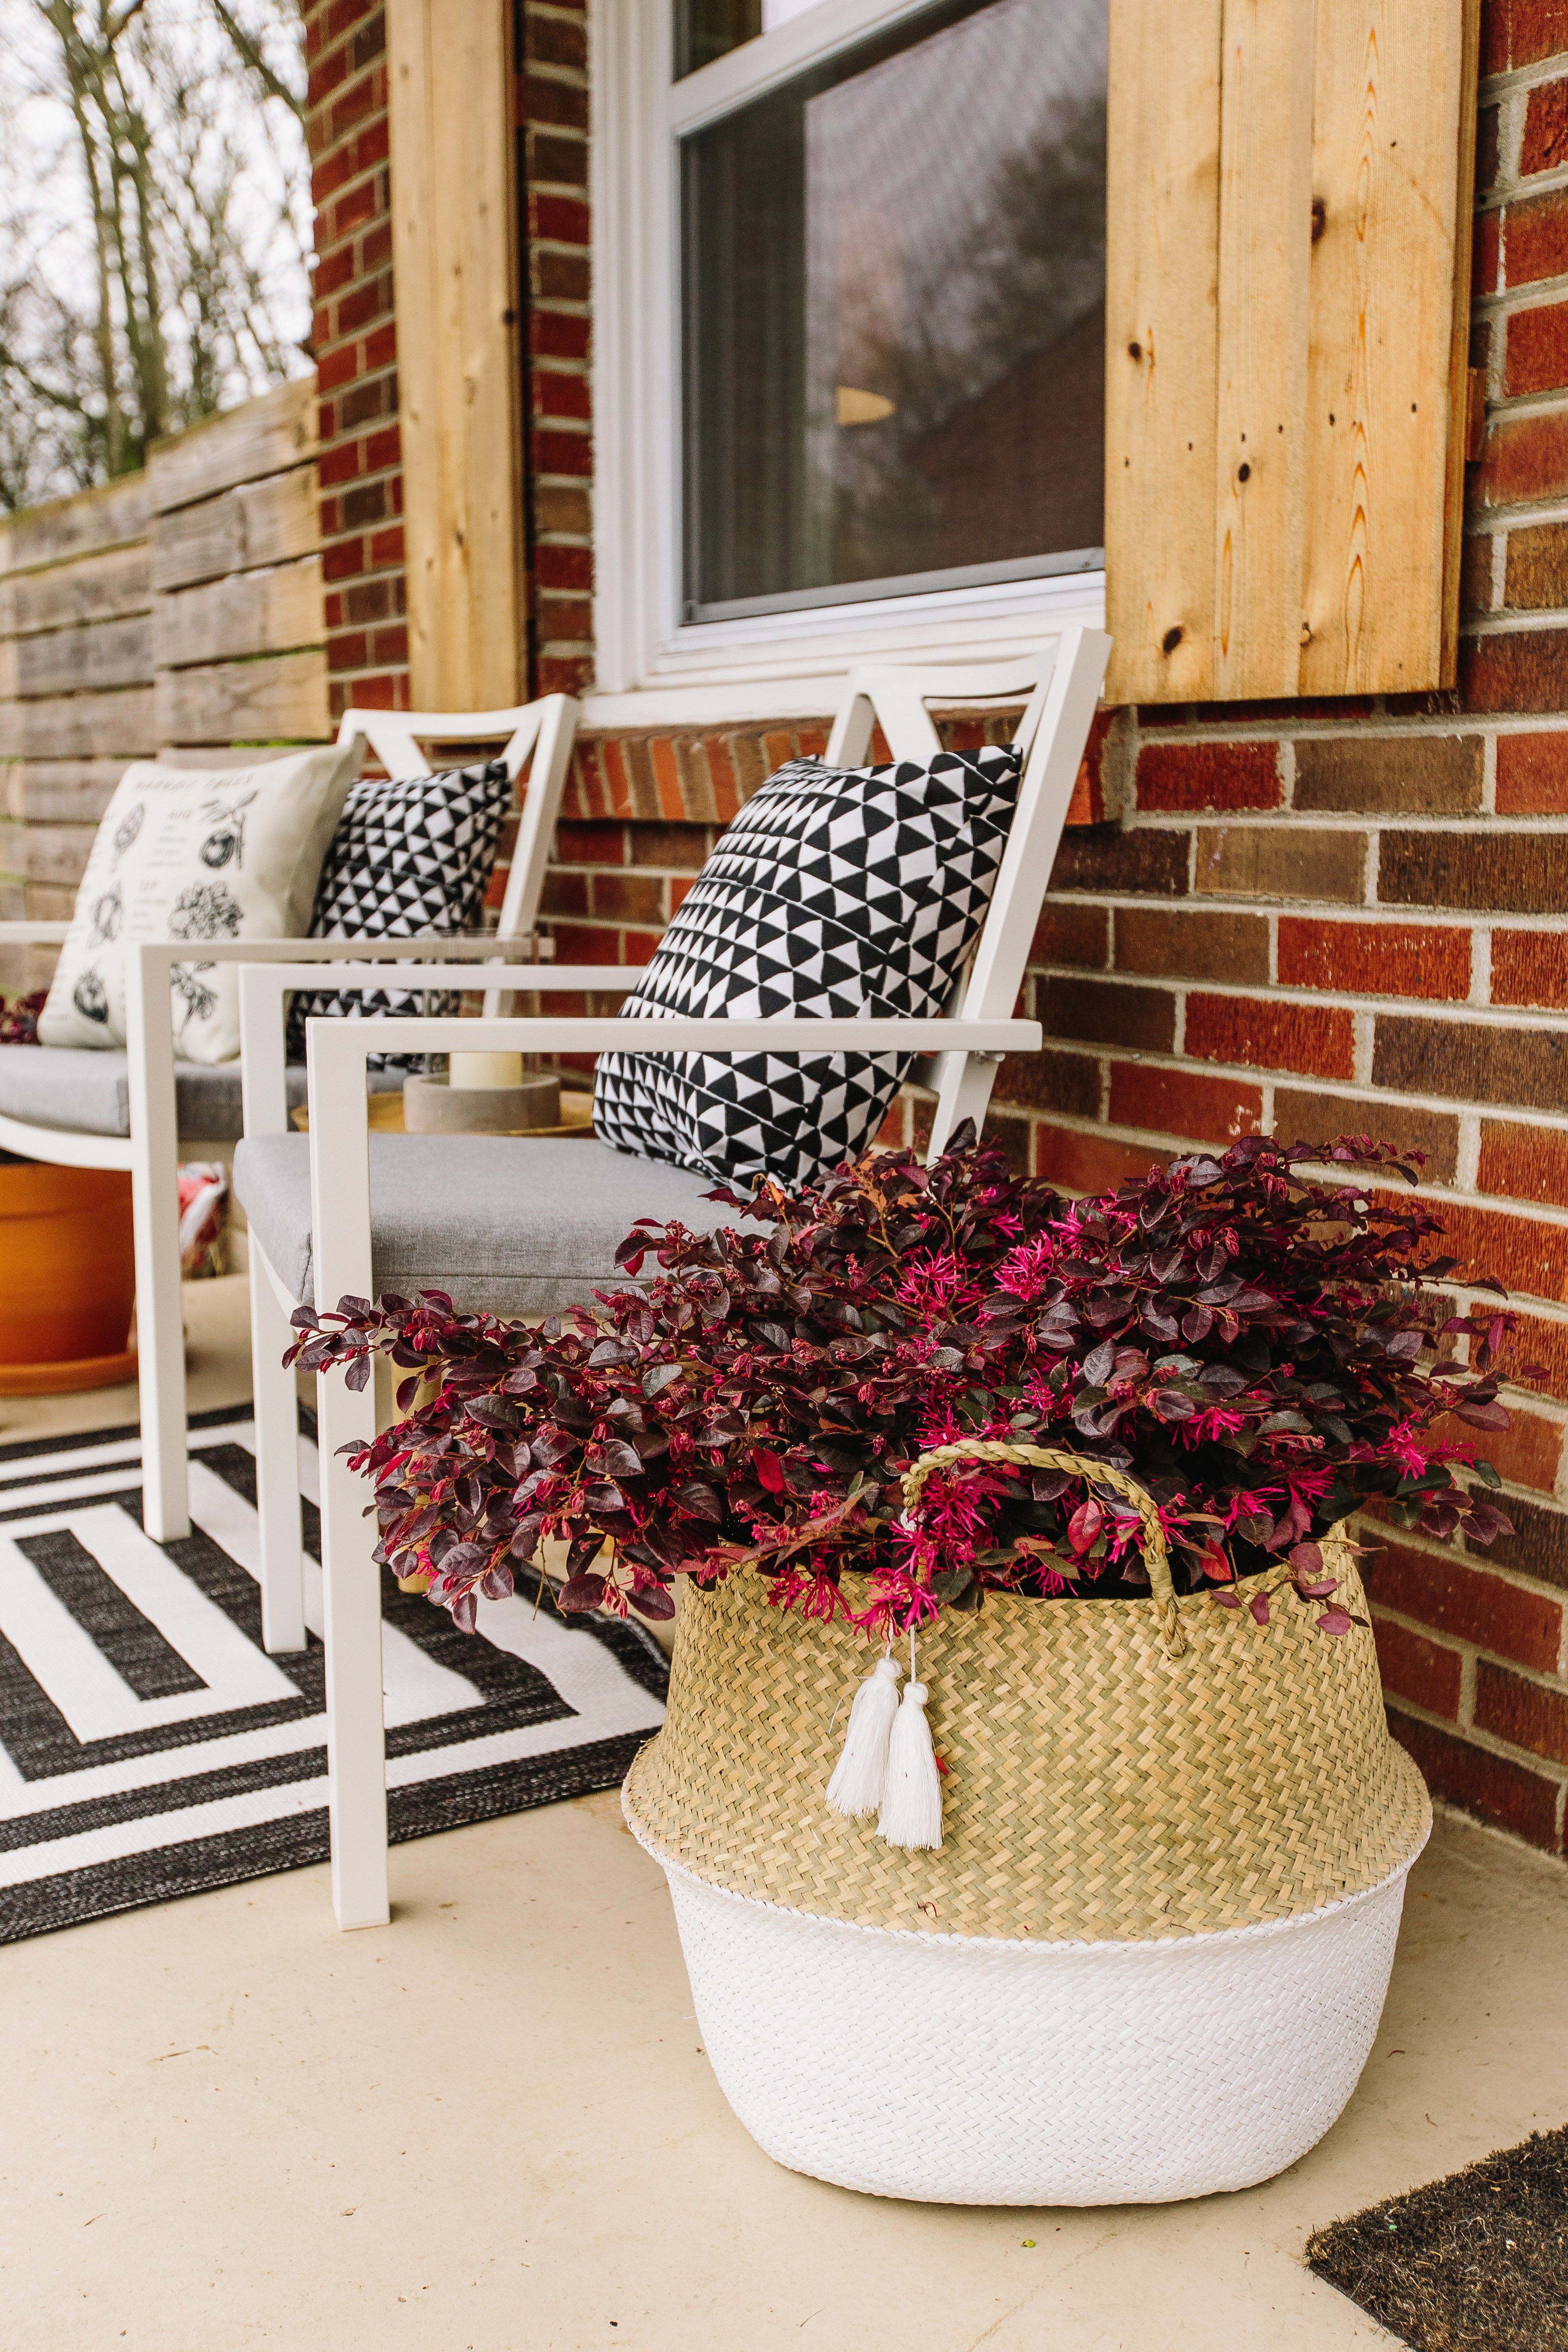 How to Create a Zen Outdoor Oasis on a Budget (With images ...